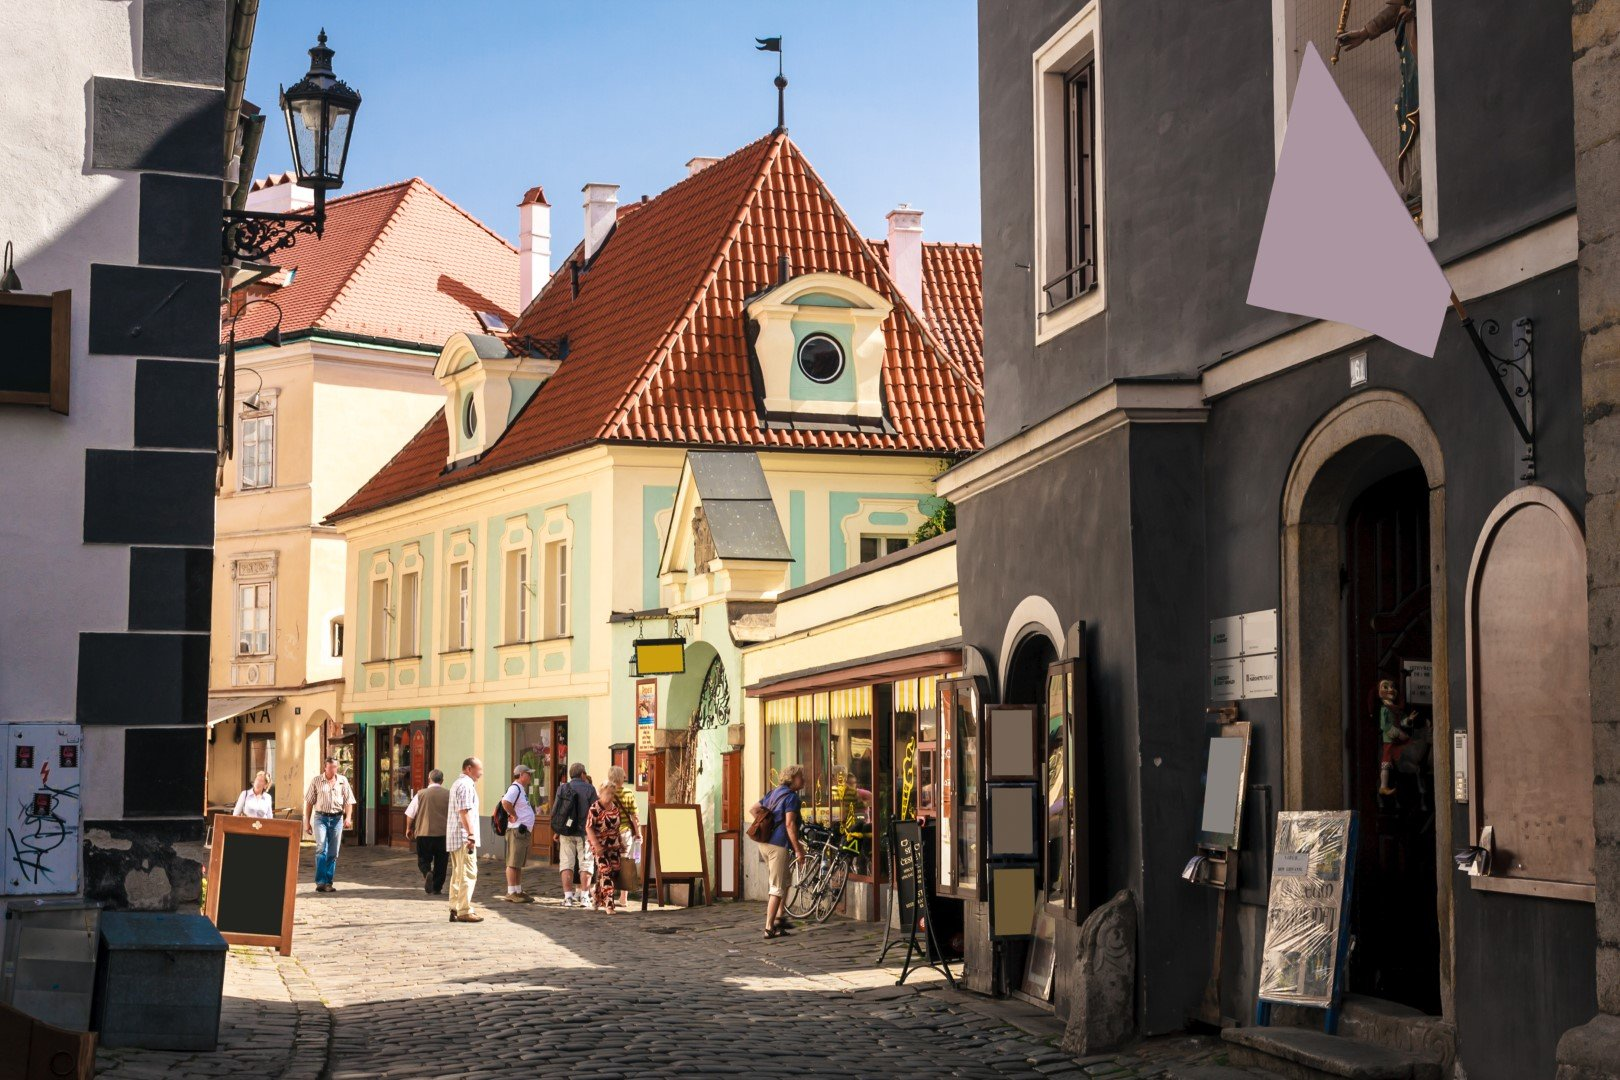 Take a time travel adventure back to the Middle Ages and visit Cesky Krumlov on a full-day small-group tour. ***Guaranteed departure with a minimum of 4 persons***